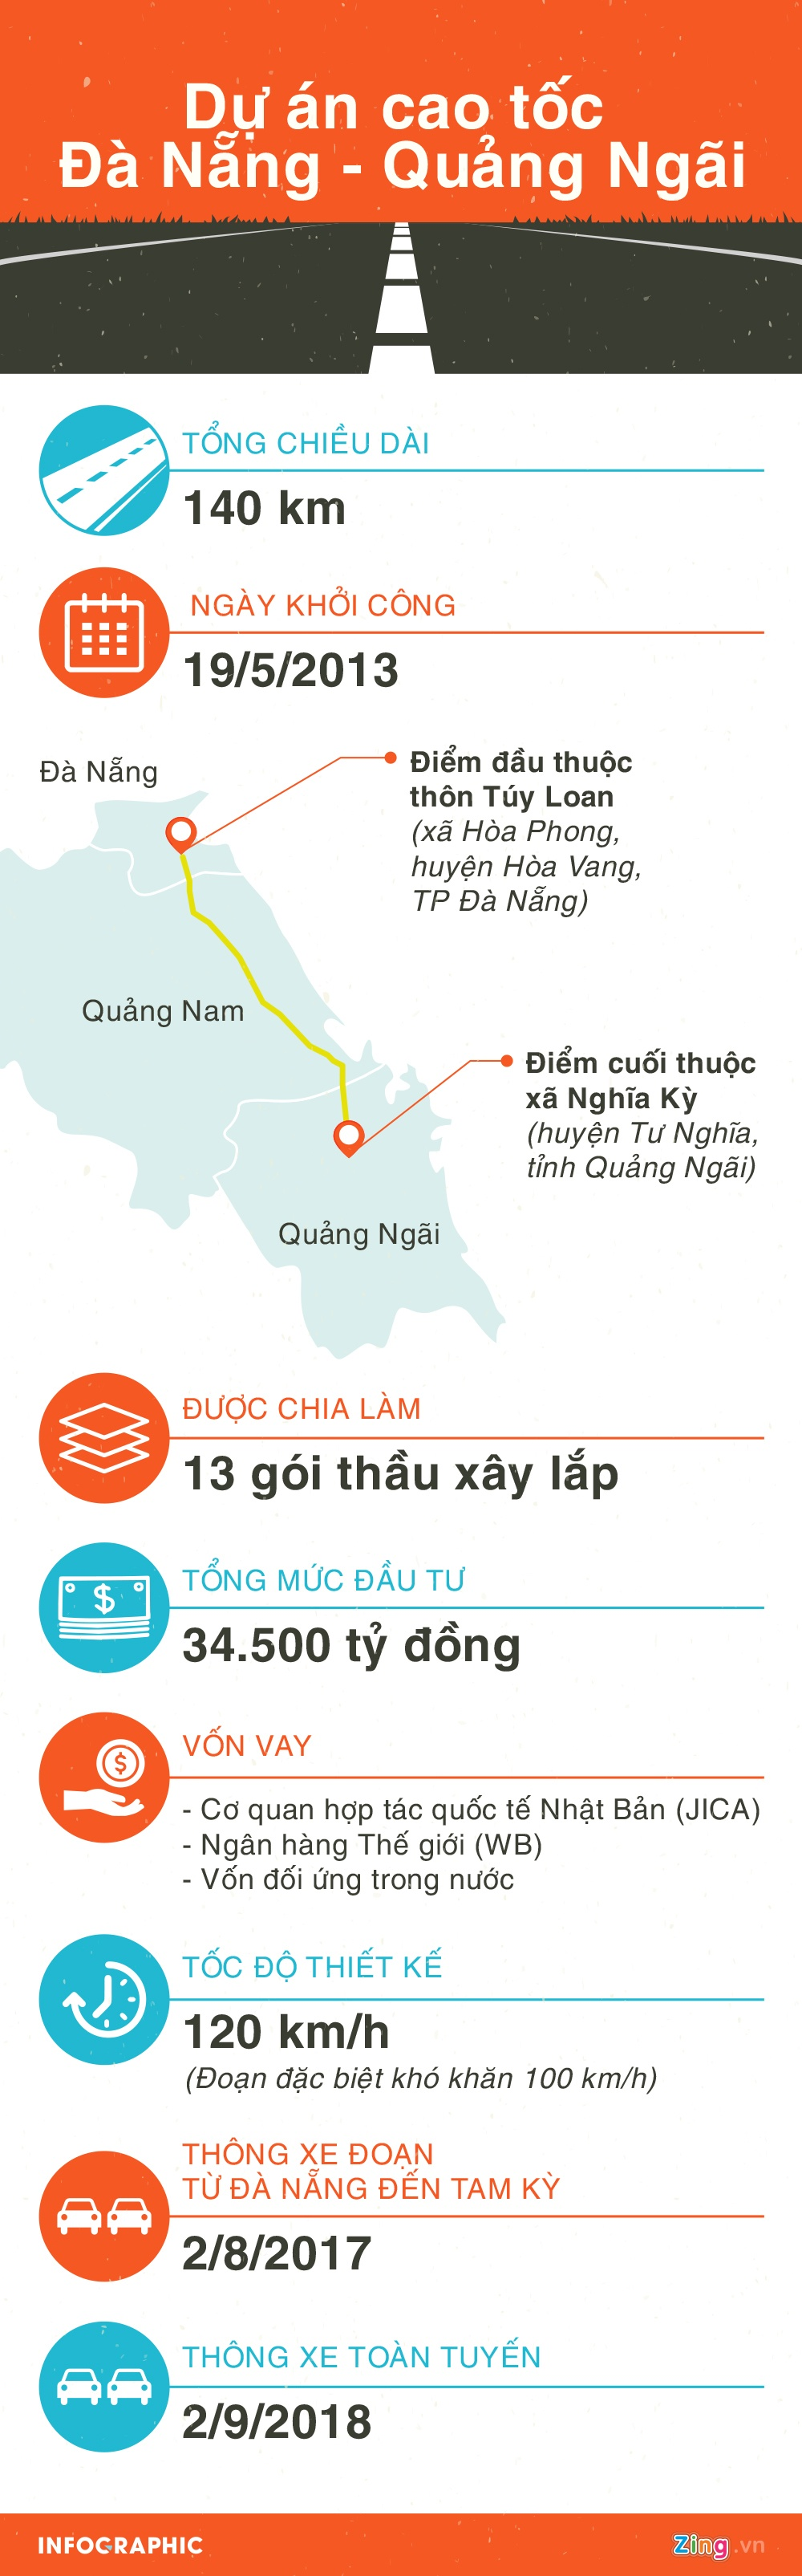 Cao toc 34.500 ty lai xuat hien chi chit 'o ga' hinh anh 11